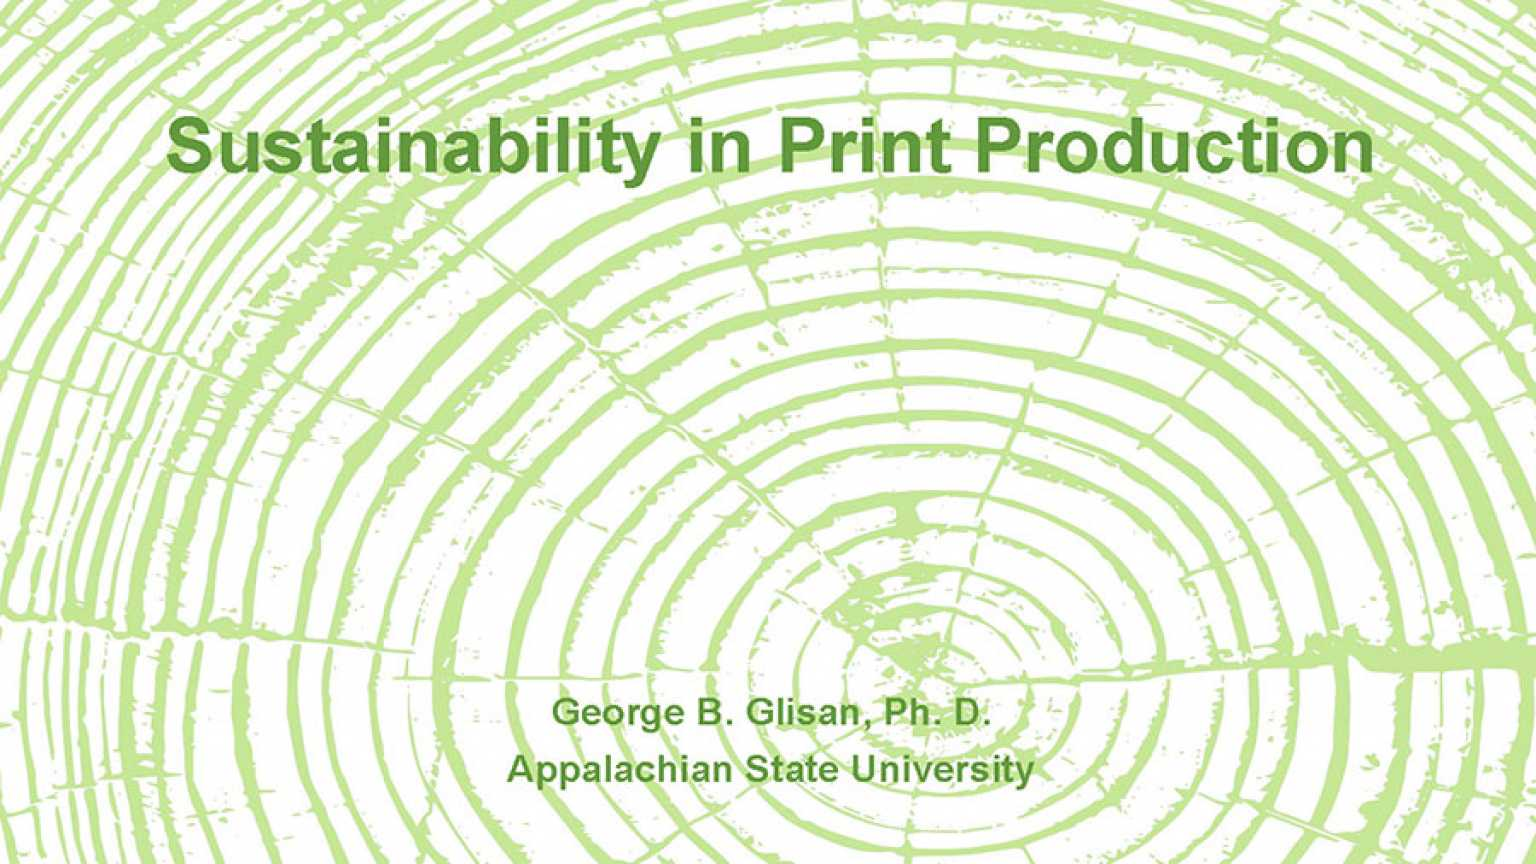 Sustainability and Print Production poster